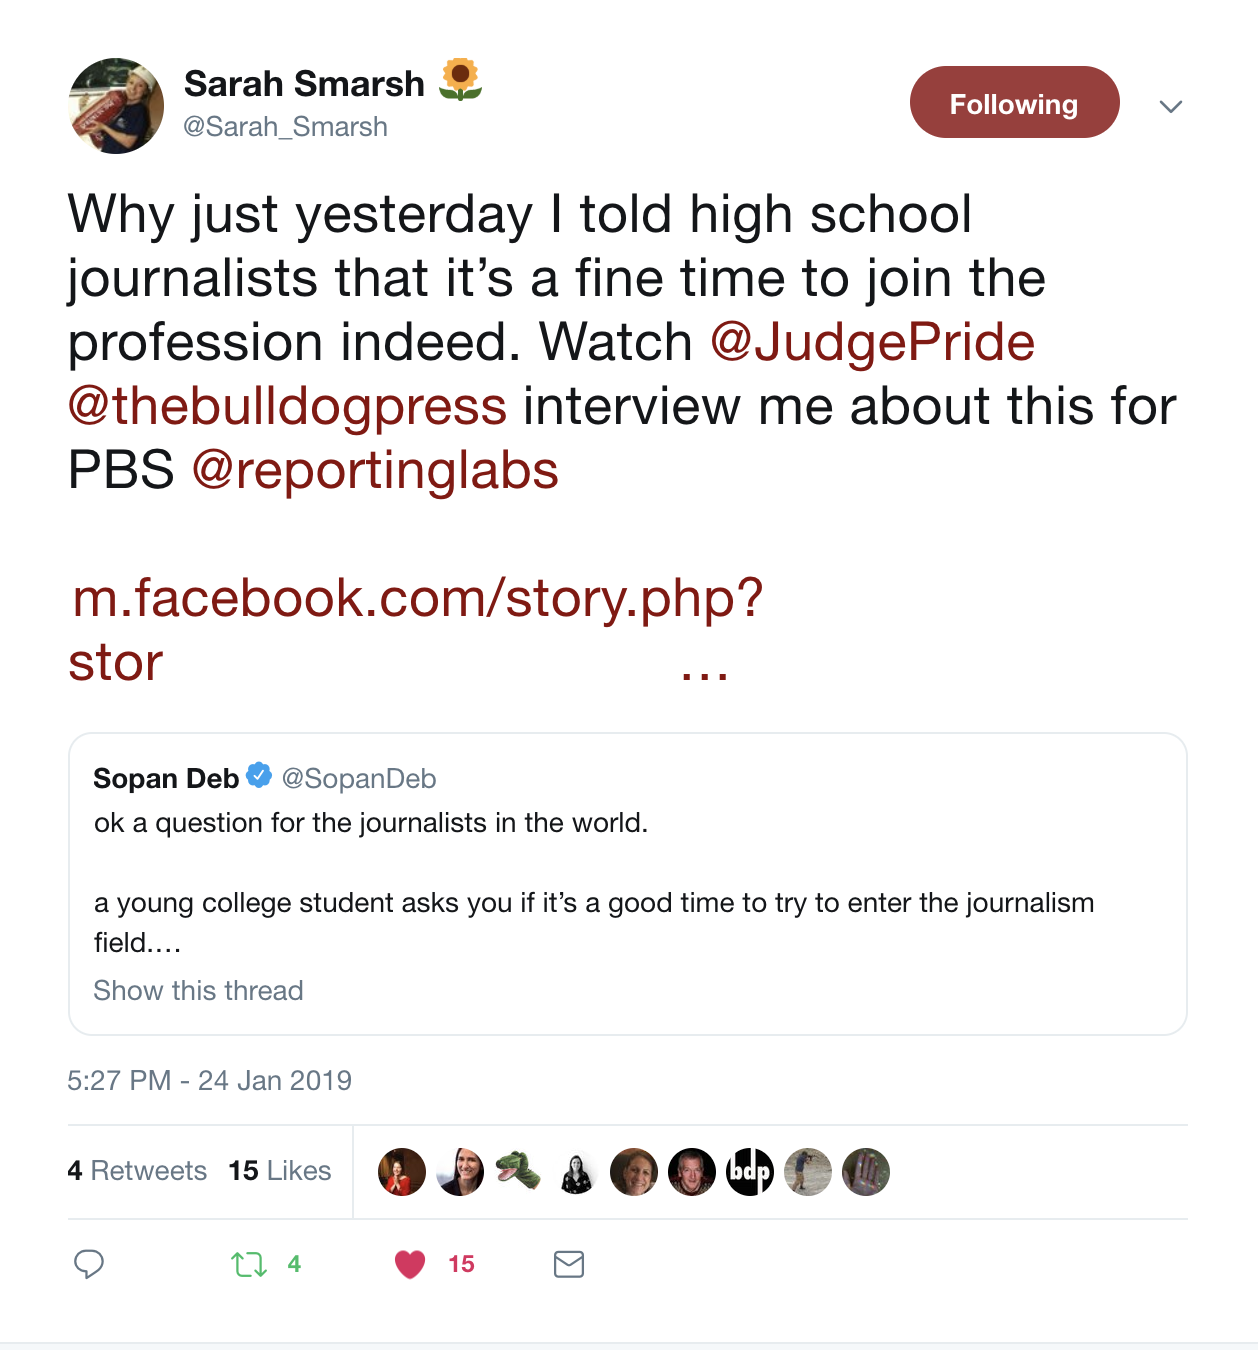 Sarah Smarsh's tweet about Amaia's interview